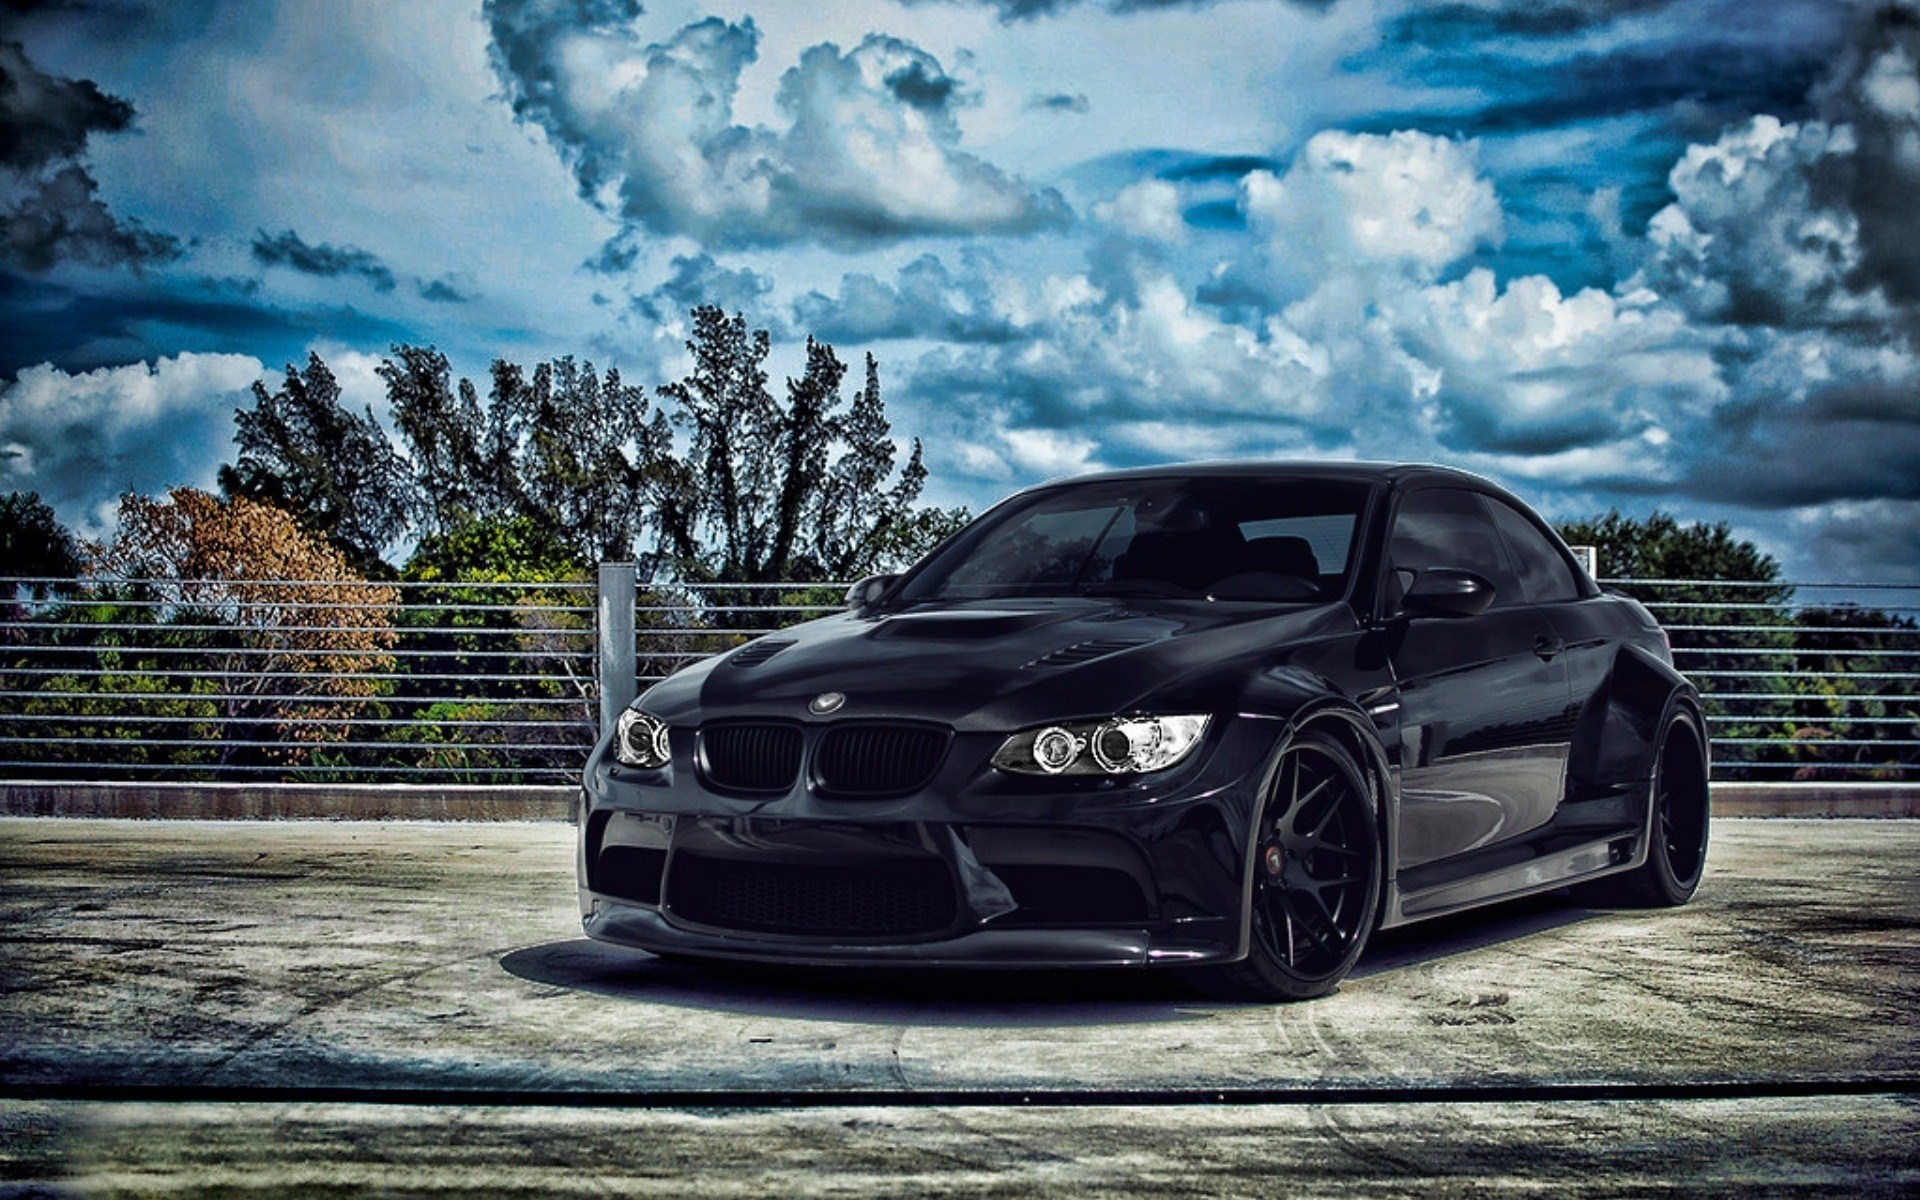 BMW M3 convertible Wallpaper | Wide Wallpaper Collections